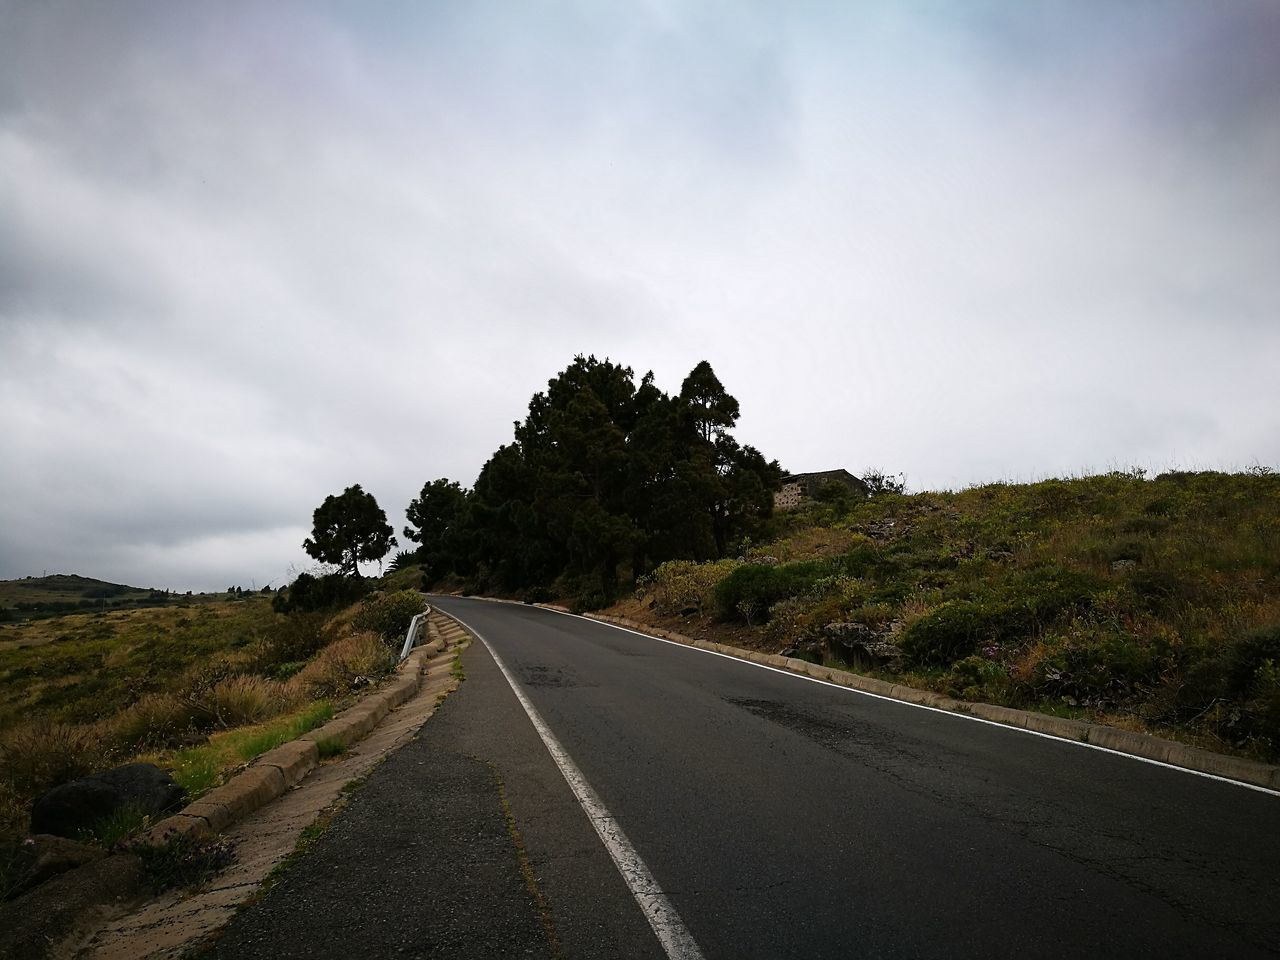 road, the way forward, sky, transportation, tree, day, no people, outdoors, tranquility, nature, landscape